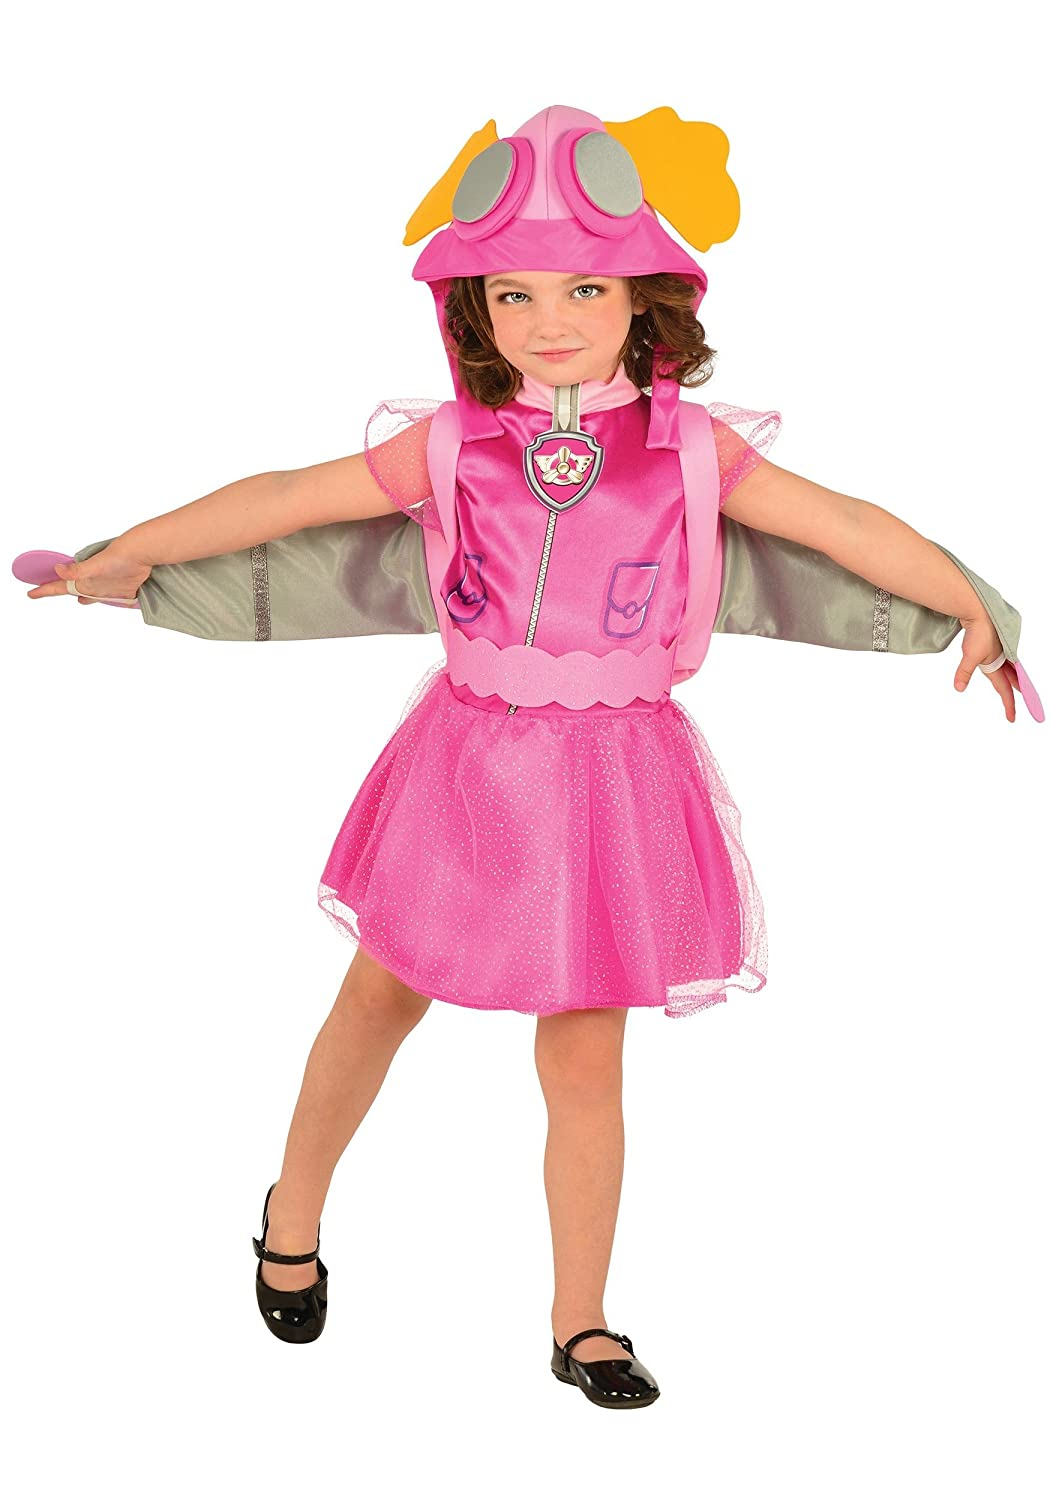 Rubies Costume Toddler PAW Patrol Skye Child Costume, One Color, 1-2 Years Rubies Costume Co (Canada) 610503